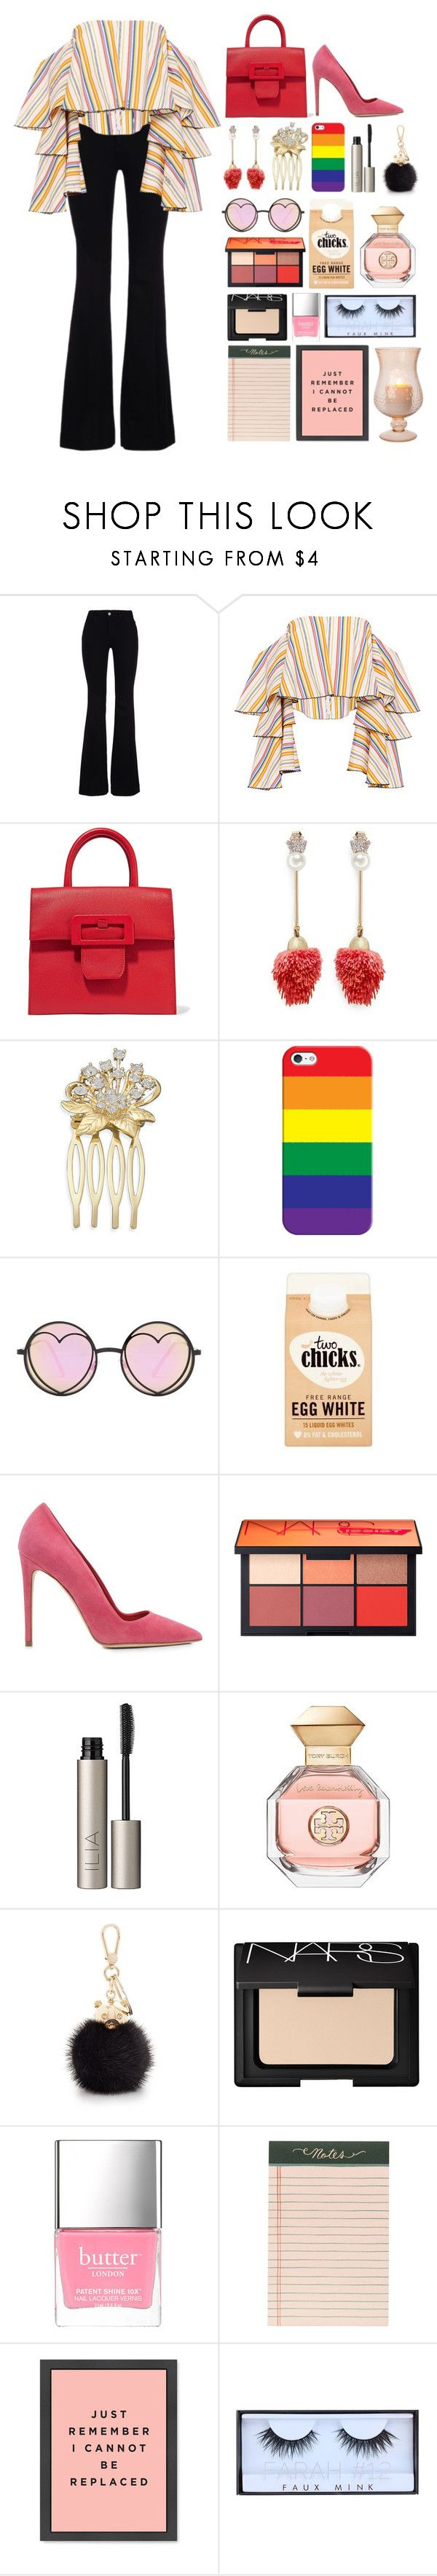 """5.552"" by katrina-yeow ❤ liked on Polyvore featuring STELLA McCARTNEY, Caroline Constas, Maison Margiela, Venna, Casetify, Betsey Johnson, Dee Keller, NARS Cosmetics, Ilia and Tory Burch"